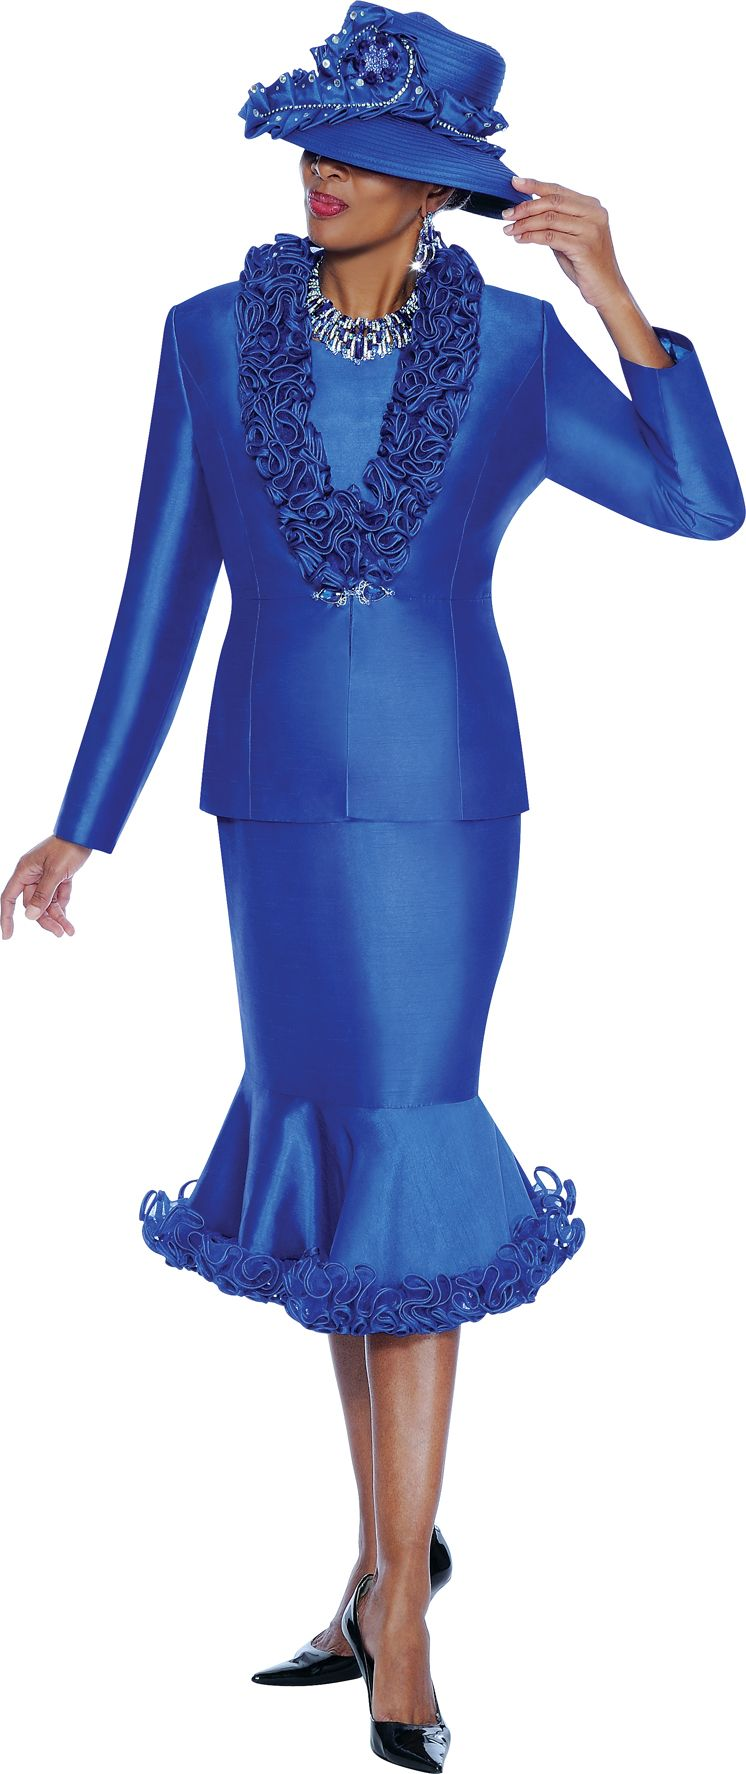 Terramina 7458 Womens Church Suit with Ruffles French Novelty